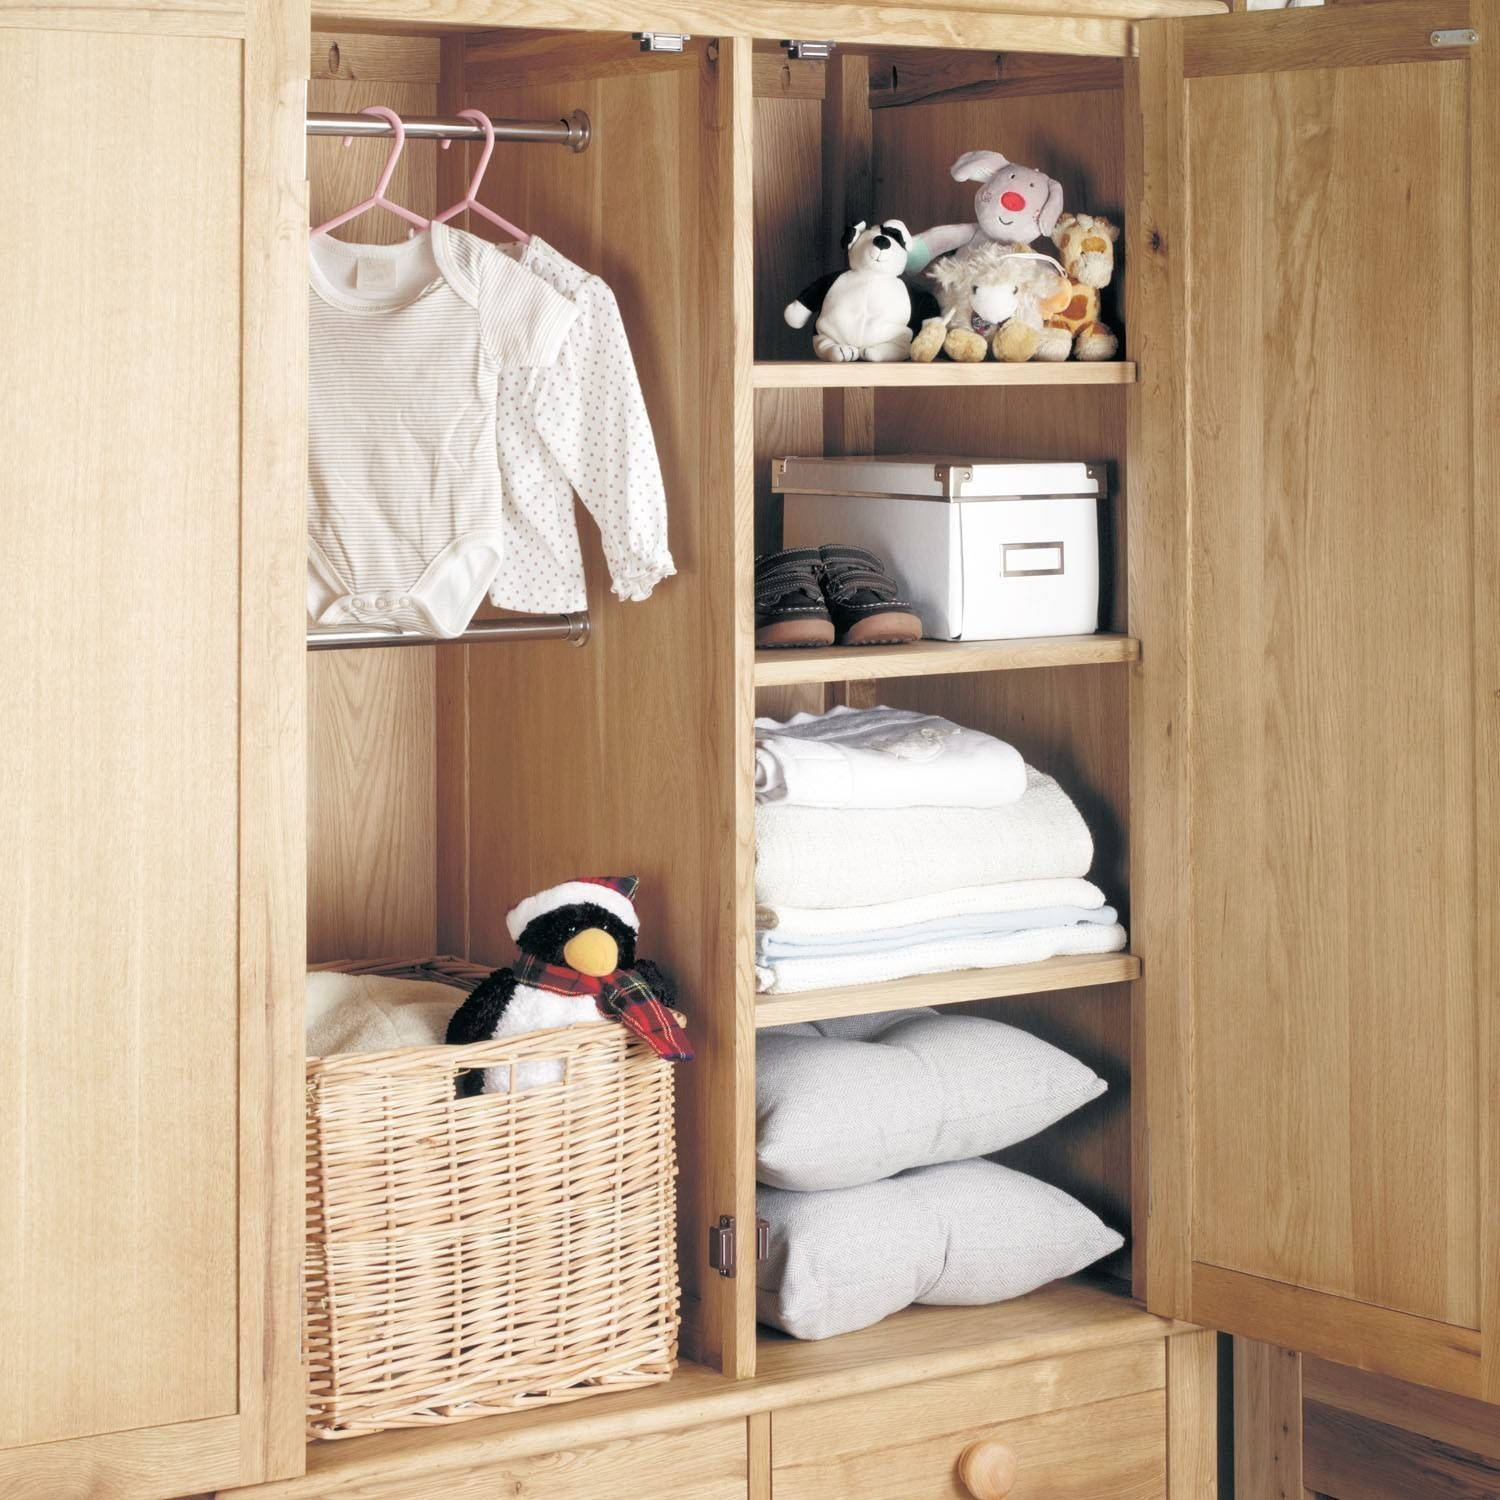 30 Best Childrens Wardrobes With Drawers And Shelves inside Drawers and Shelves for Wardrobes (Image 1 of 30)